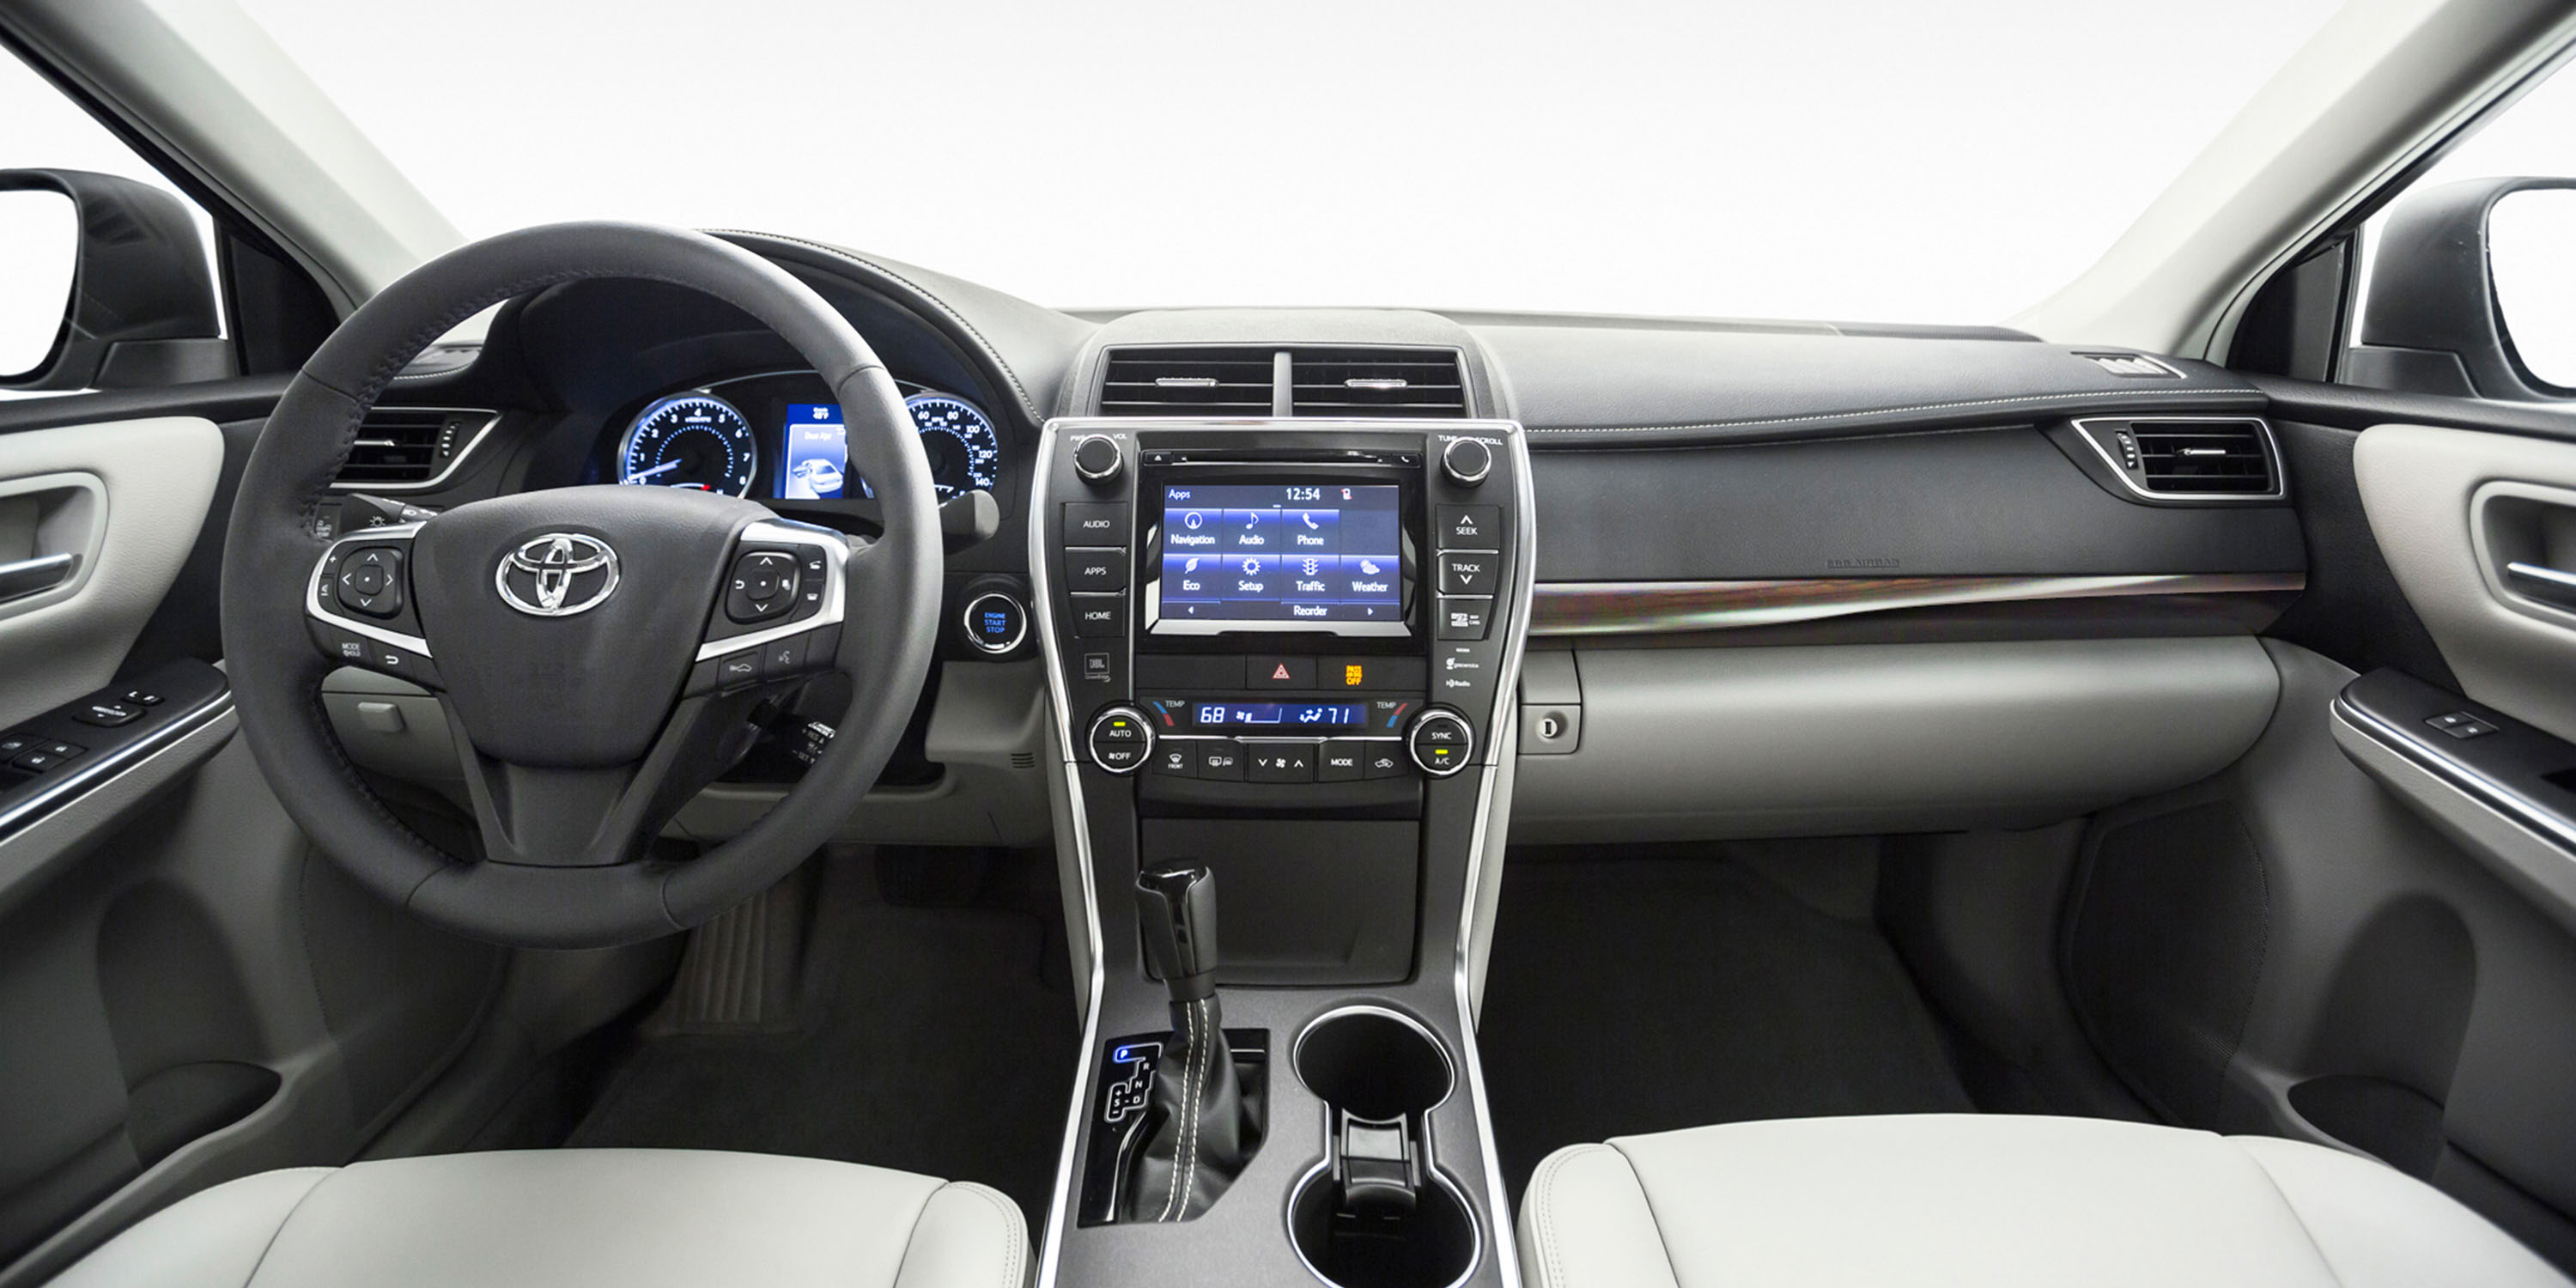 bloomberg toyota agrees to bring android auto support to future vehicles